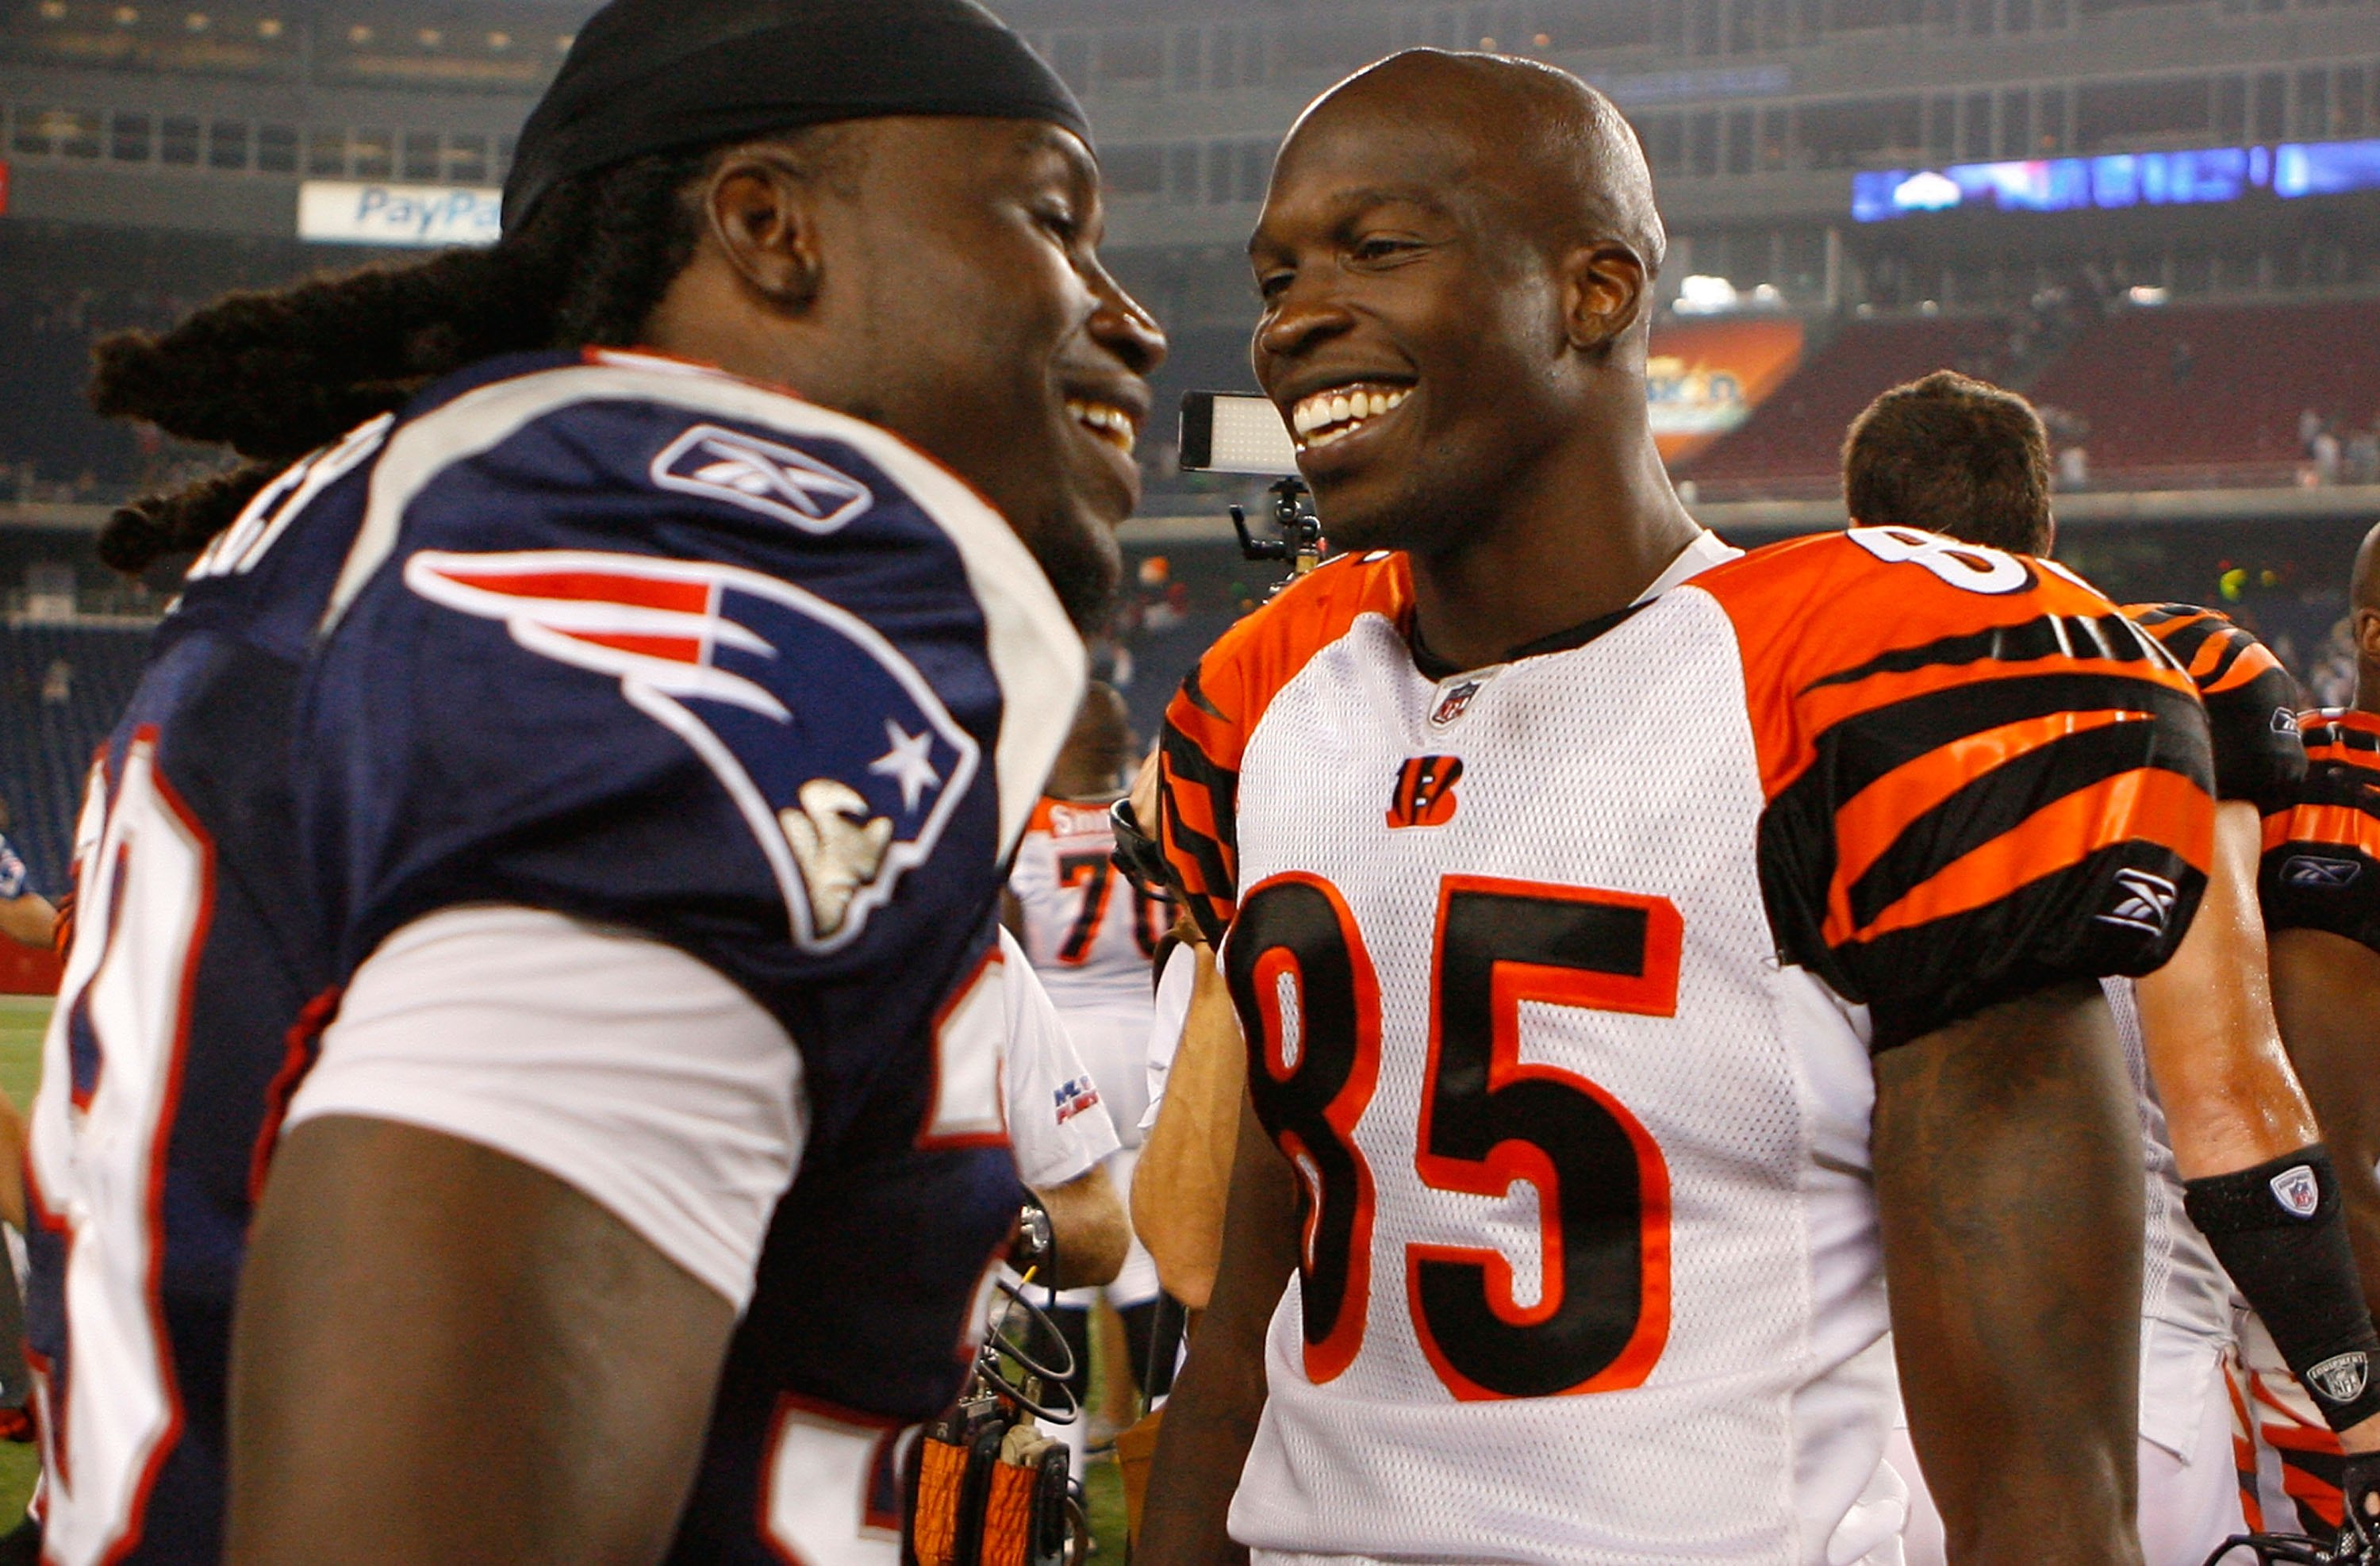 FOXBORO, MA - AUGUST 20:  Lawrence Maroney #39 of the New England Patriots chats with Chad Ochocinco #85 of the Cincinnati Bengals after a preseason game at Gillette Stadium on August 20, 2009 in Foxboro, Massachusetts. (Photo by Jim Rogash/Getty Images)